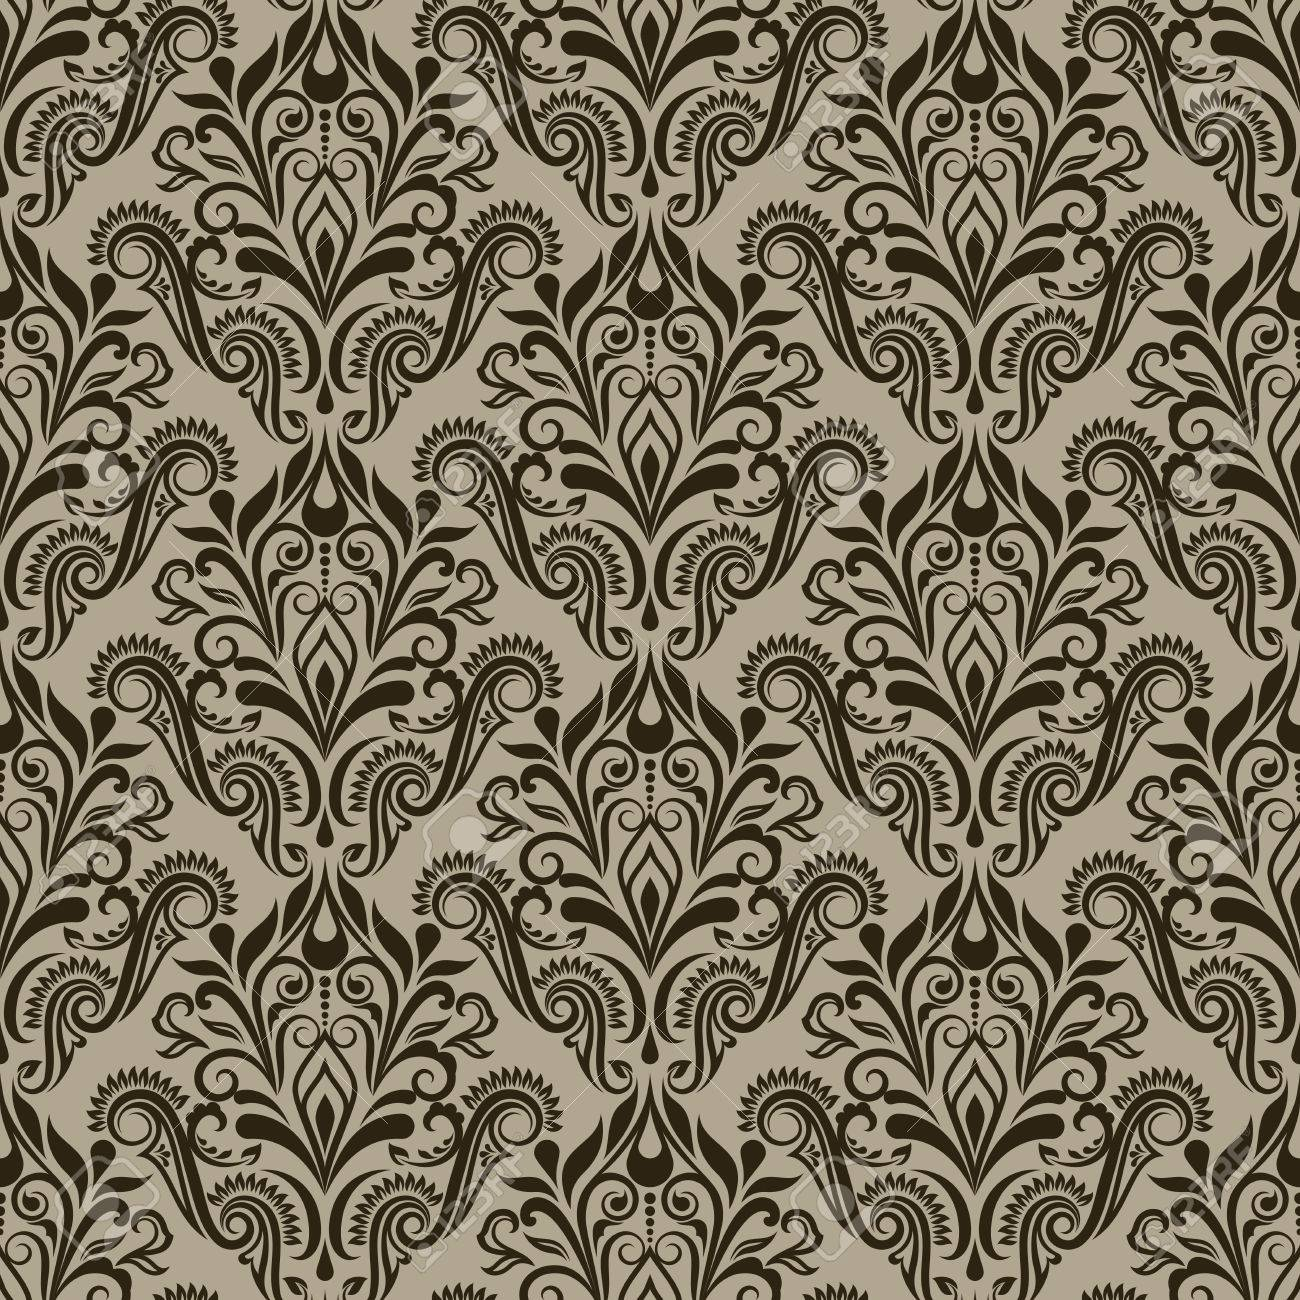 Seamless Vintage Beige And Brown Floral Wallpaper Pattern Royalty